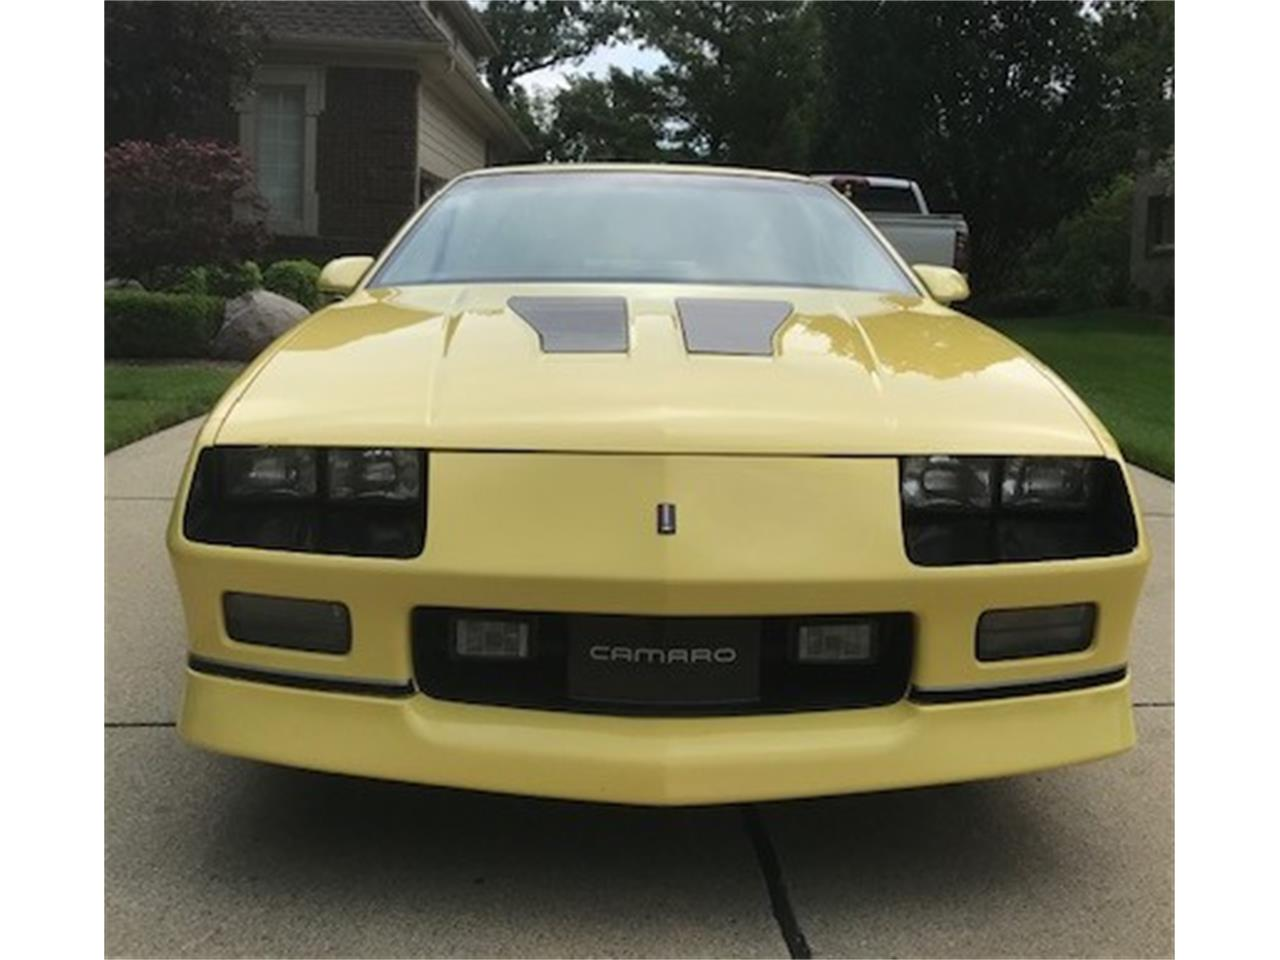 1986 Chevrolet Camaro IROC Z28 (CC-1382240) for sale in Oakland Twp, Michigan